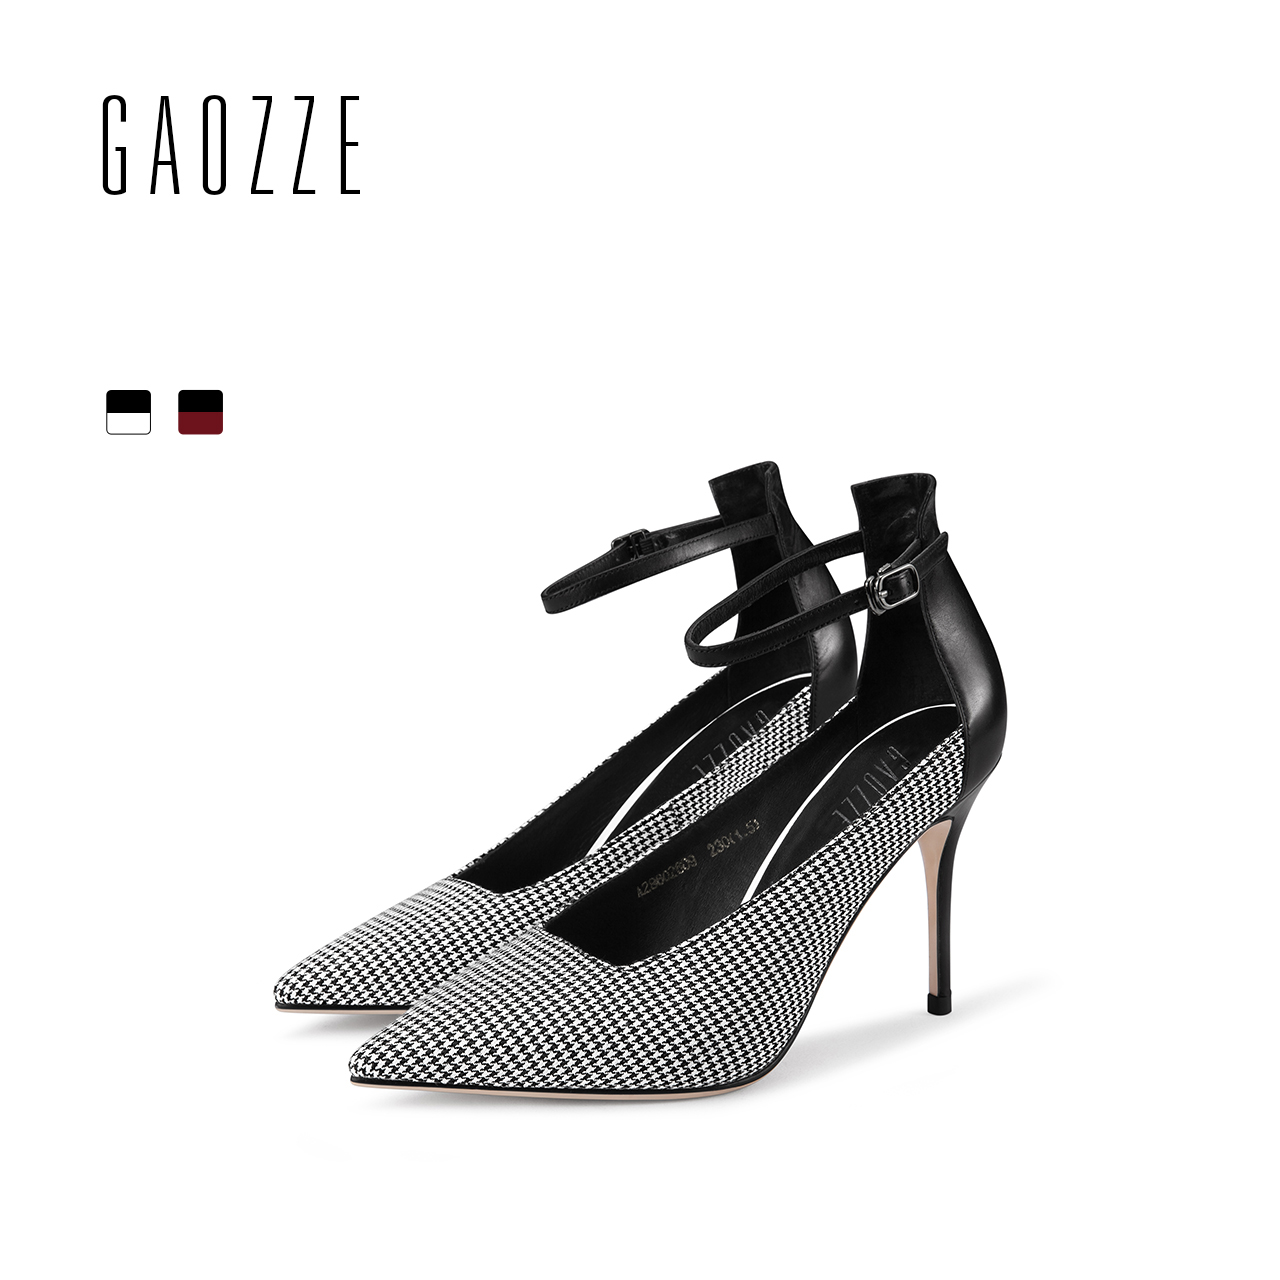 GAOZZE Fashion Plaid Cloth Ladies Pumps Shoes British style Pointed Toe Buckle Strap Stiletto High Heels Women 2018 Spring New new 2017 spring summer women shoes pointed toe high quality brand fashion womens flats ladies plus size 41 sweet flock t179